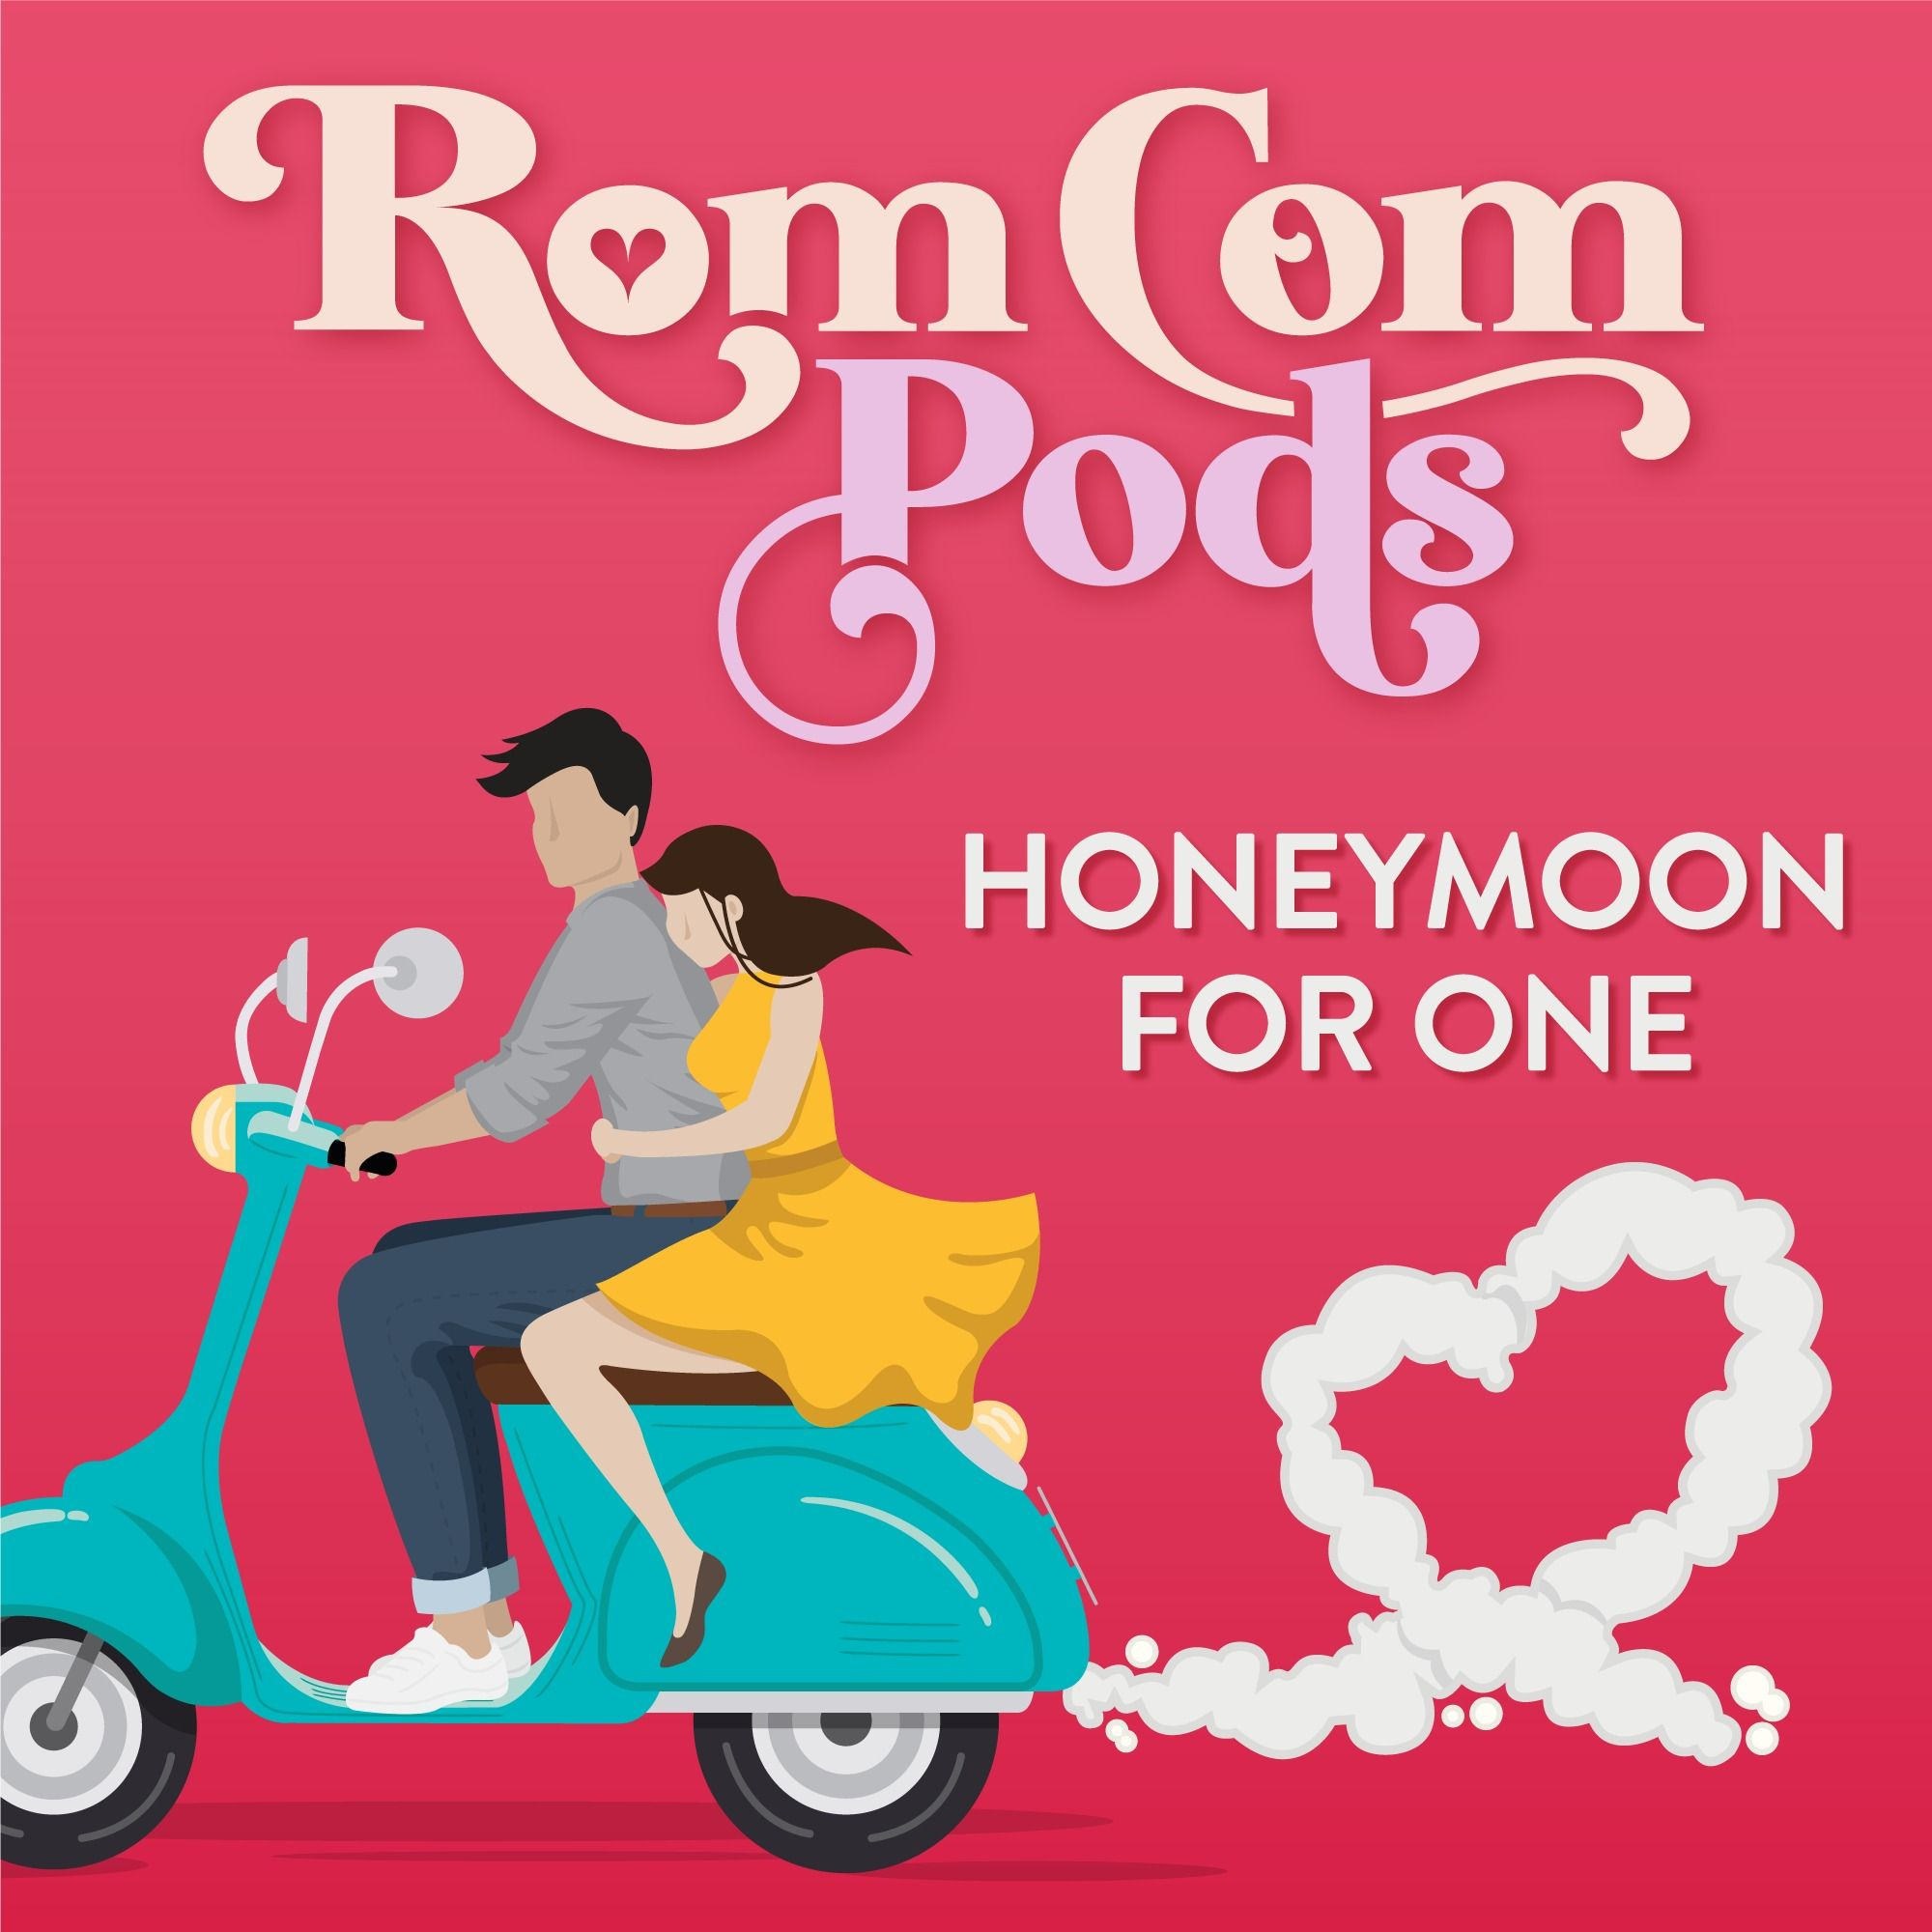 Honeymoon for One: Karaoke & Heartbreak (Ep 1)